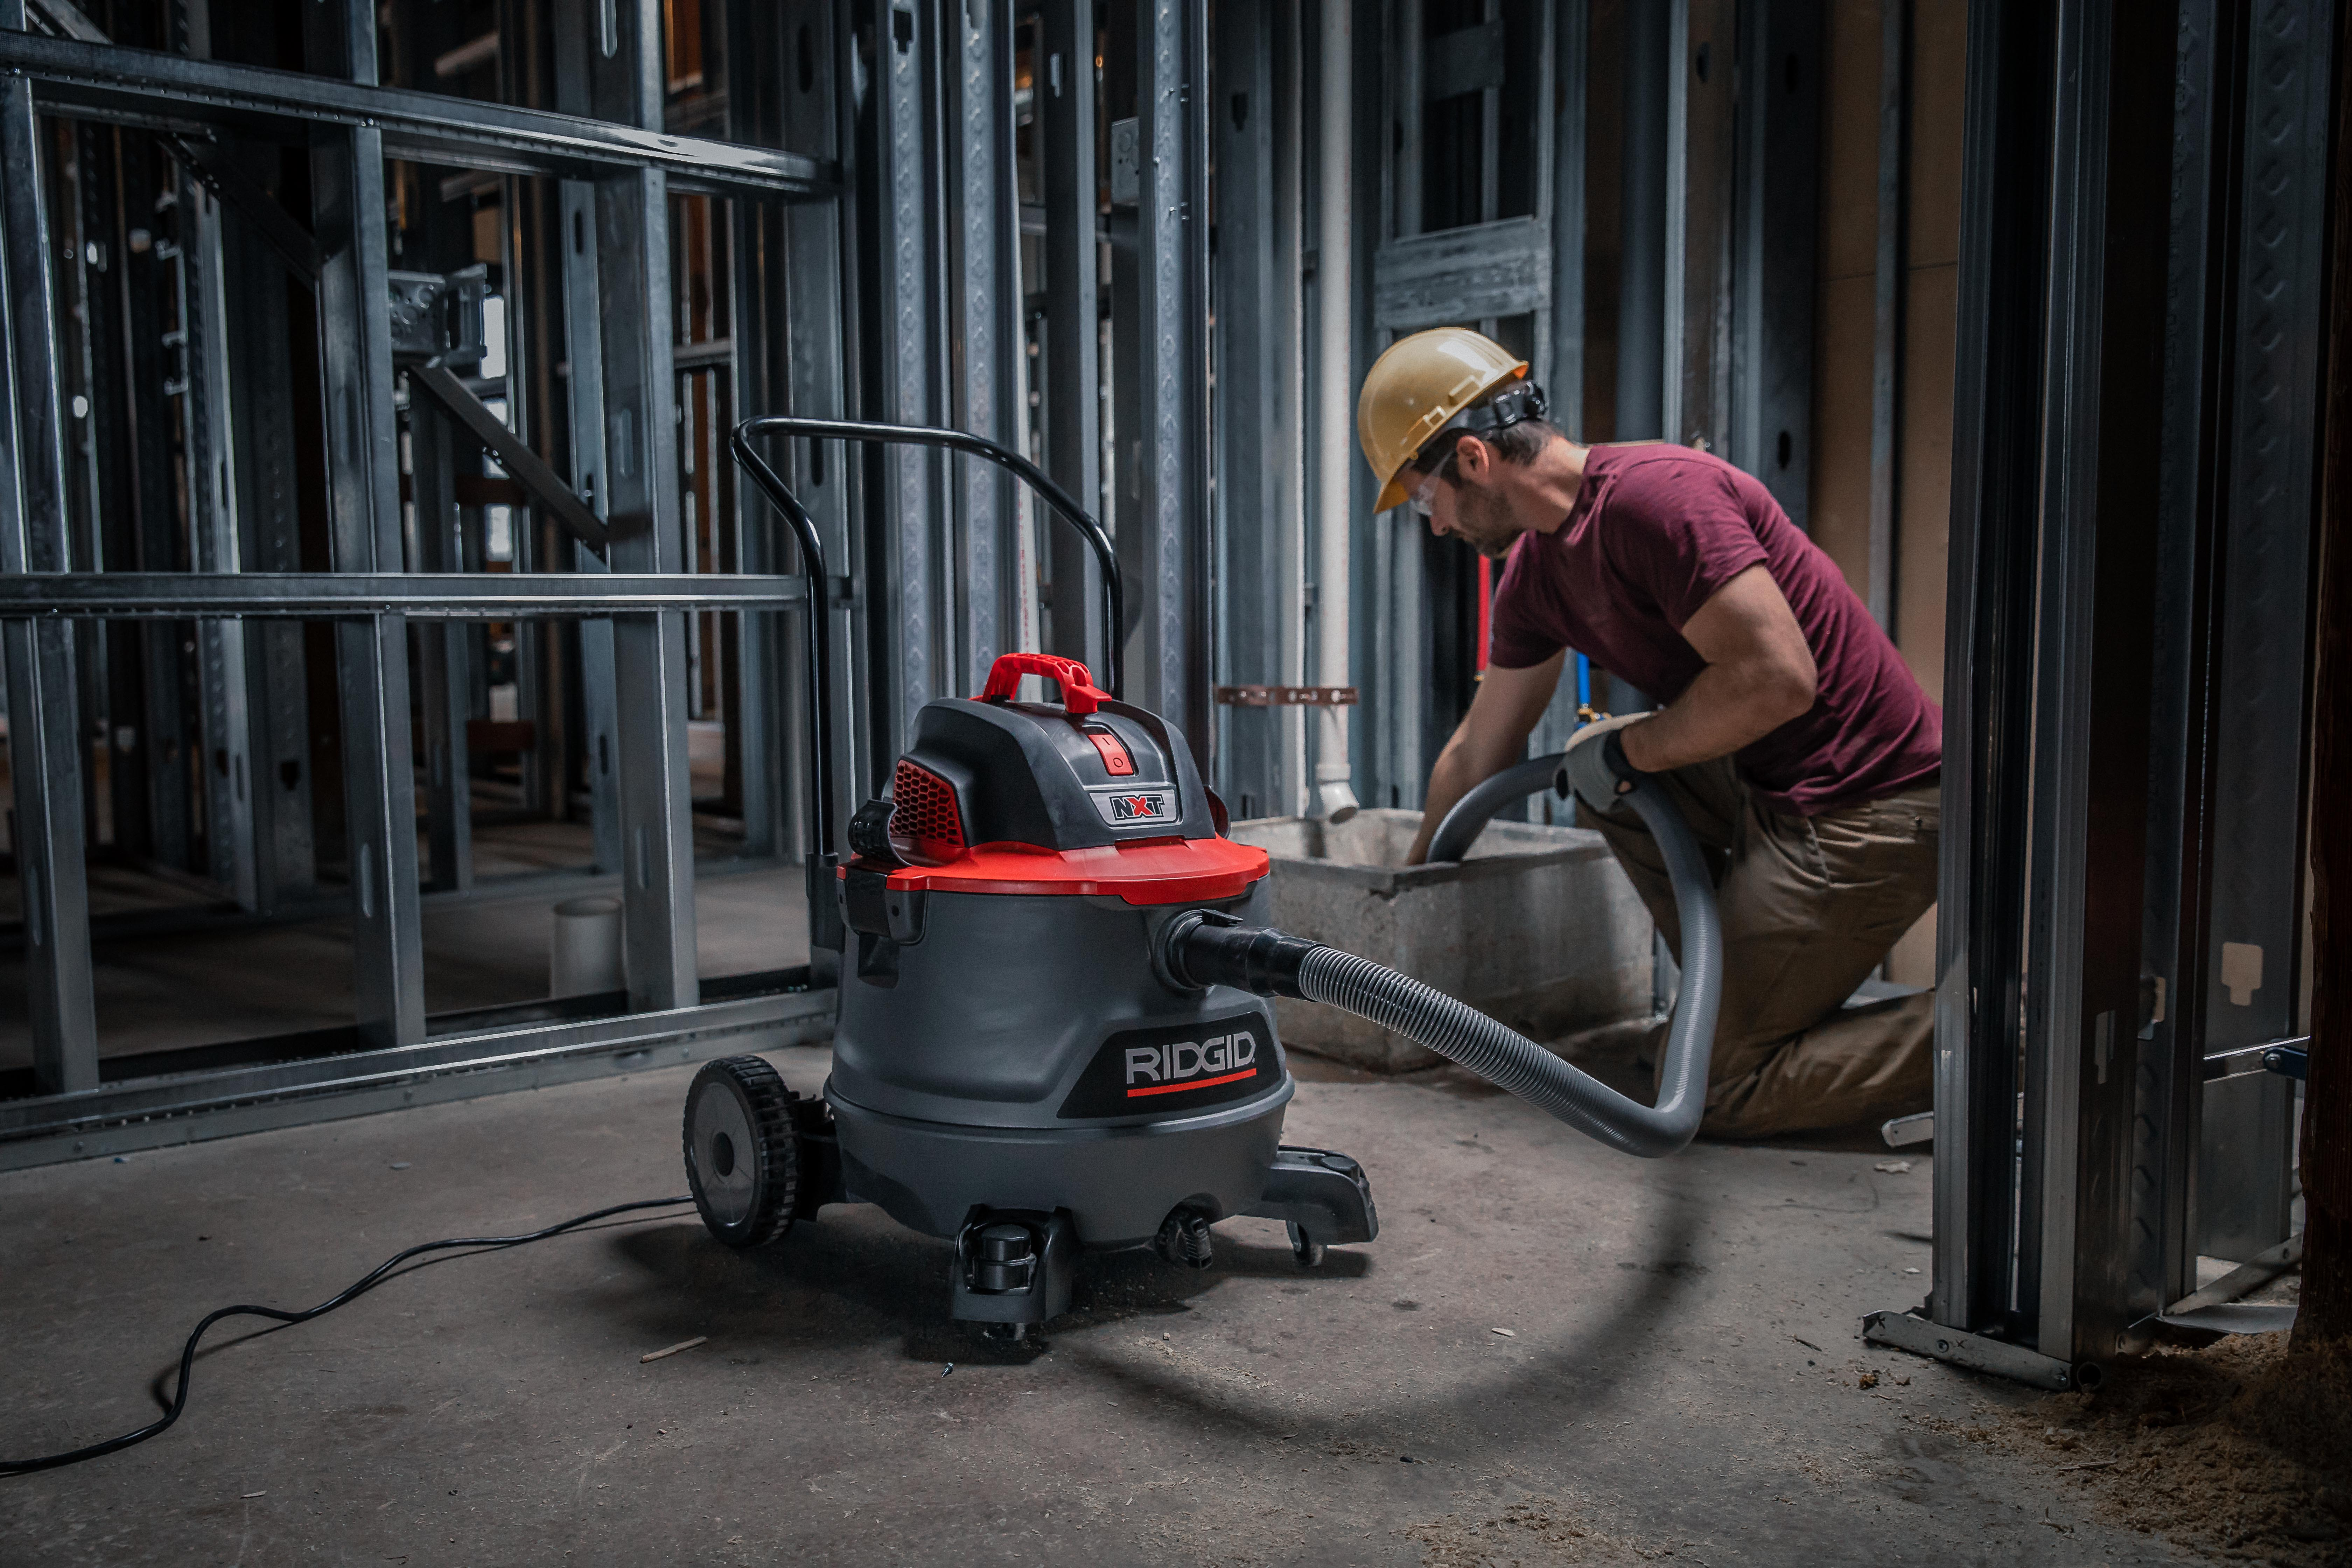 Redesigned RIDGID® Wet/Dry Vacs Deliver Even More Jobsite Convenience